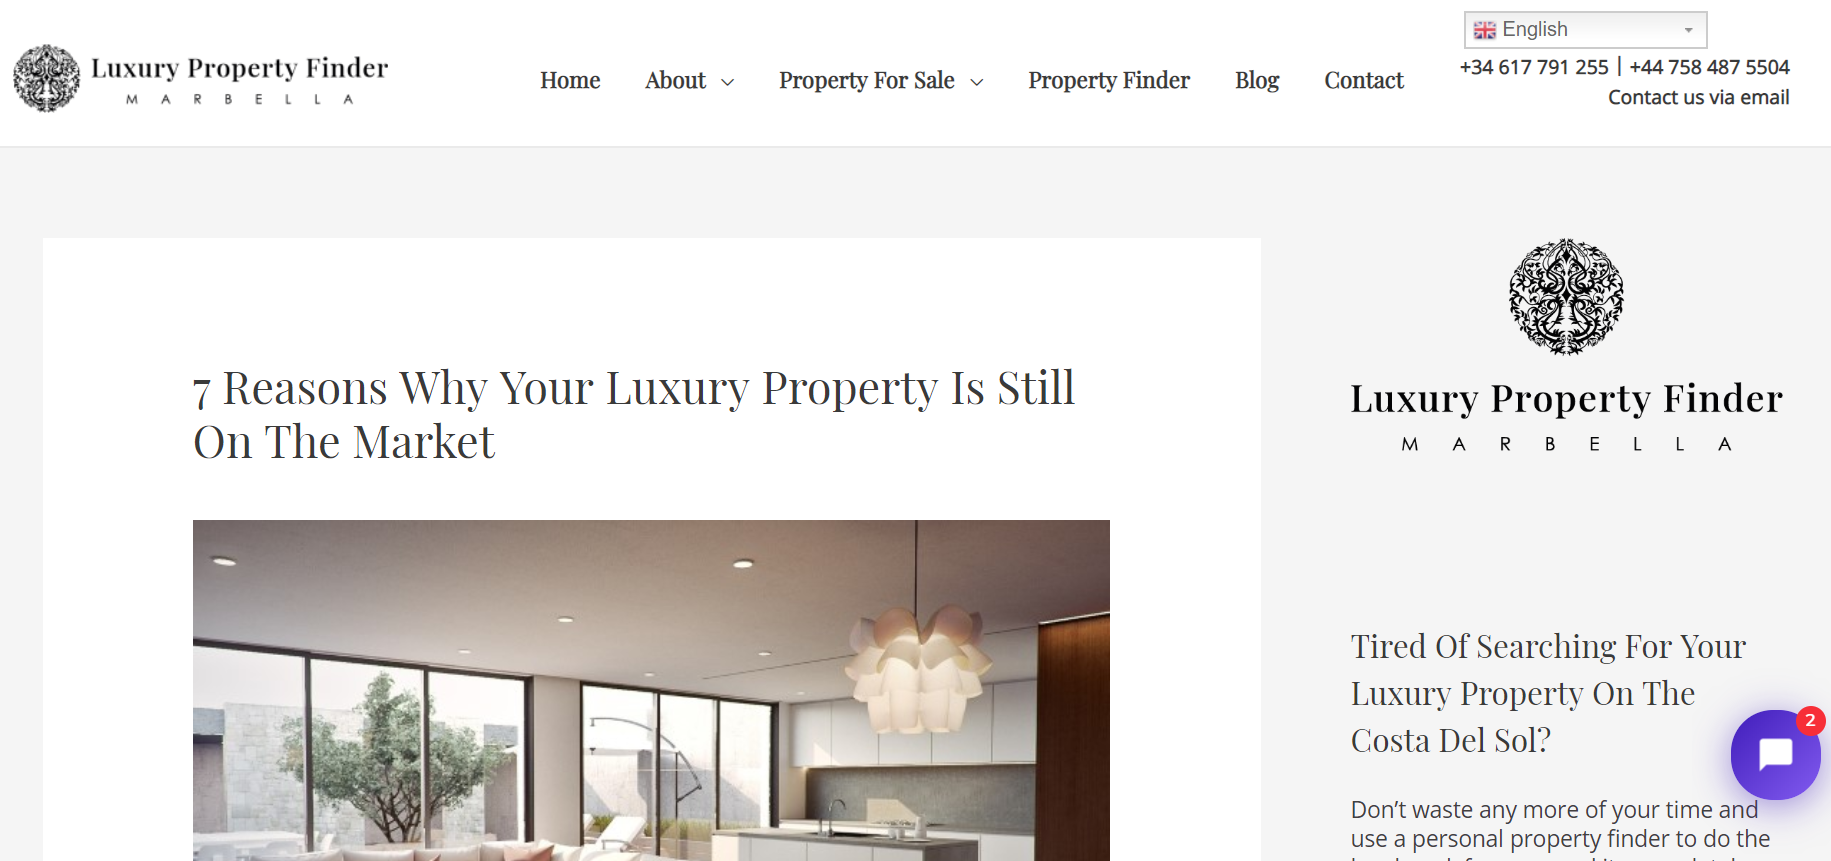 Link to real estate blog post: 7 Reasons Why Your Luxury Property Is Still on the Market